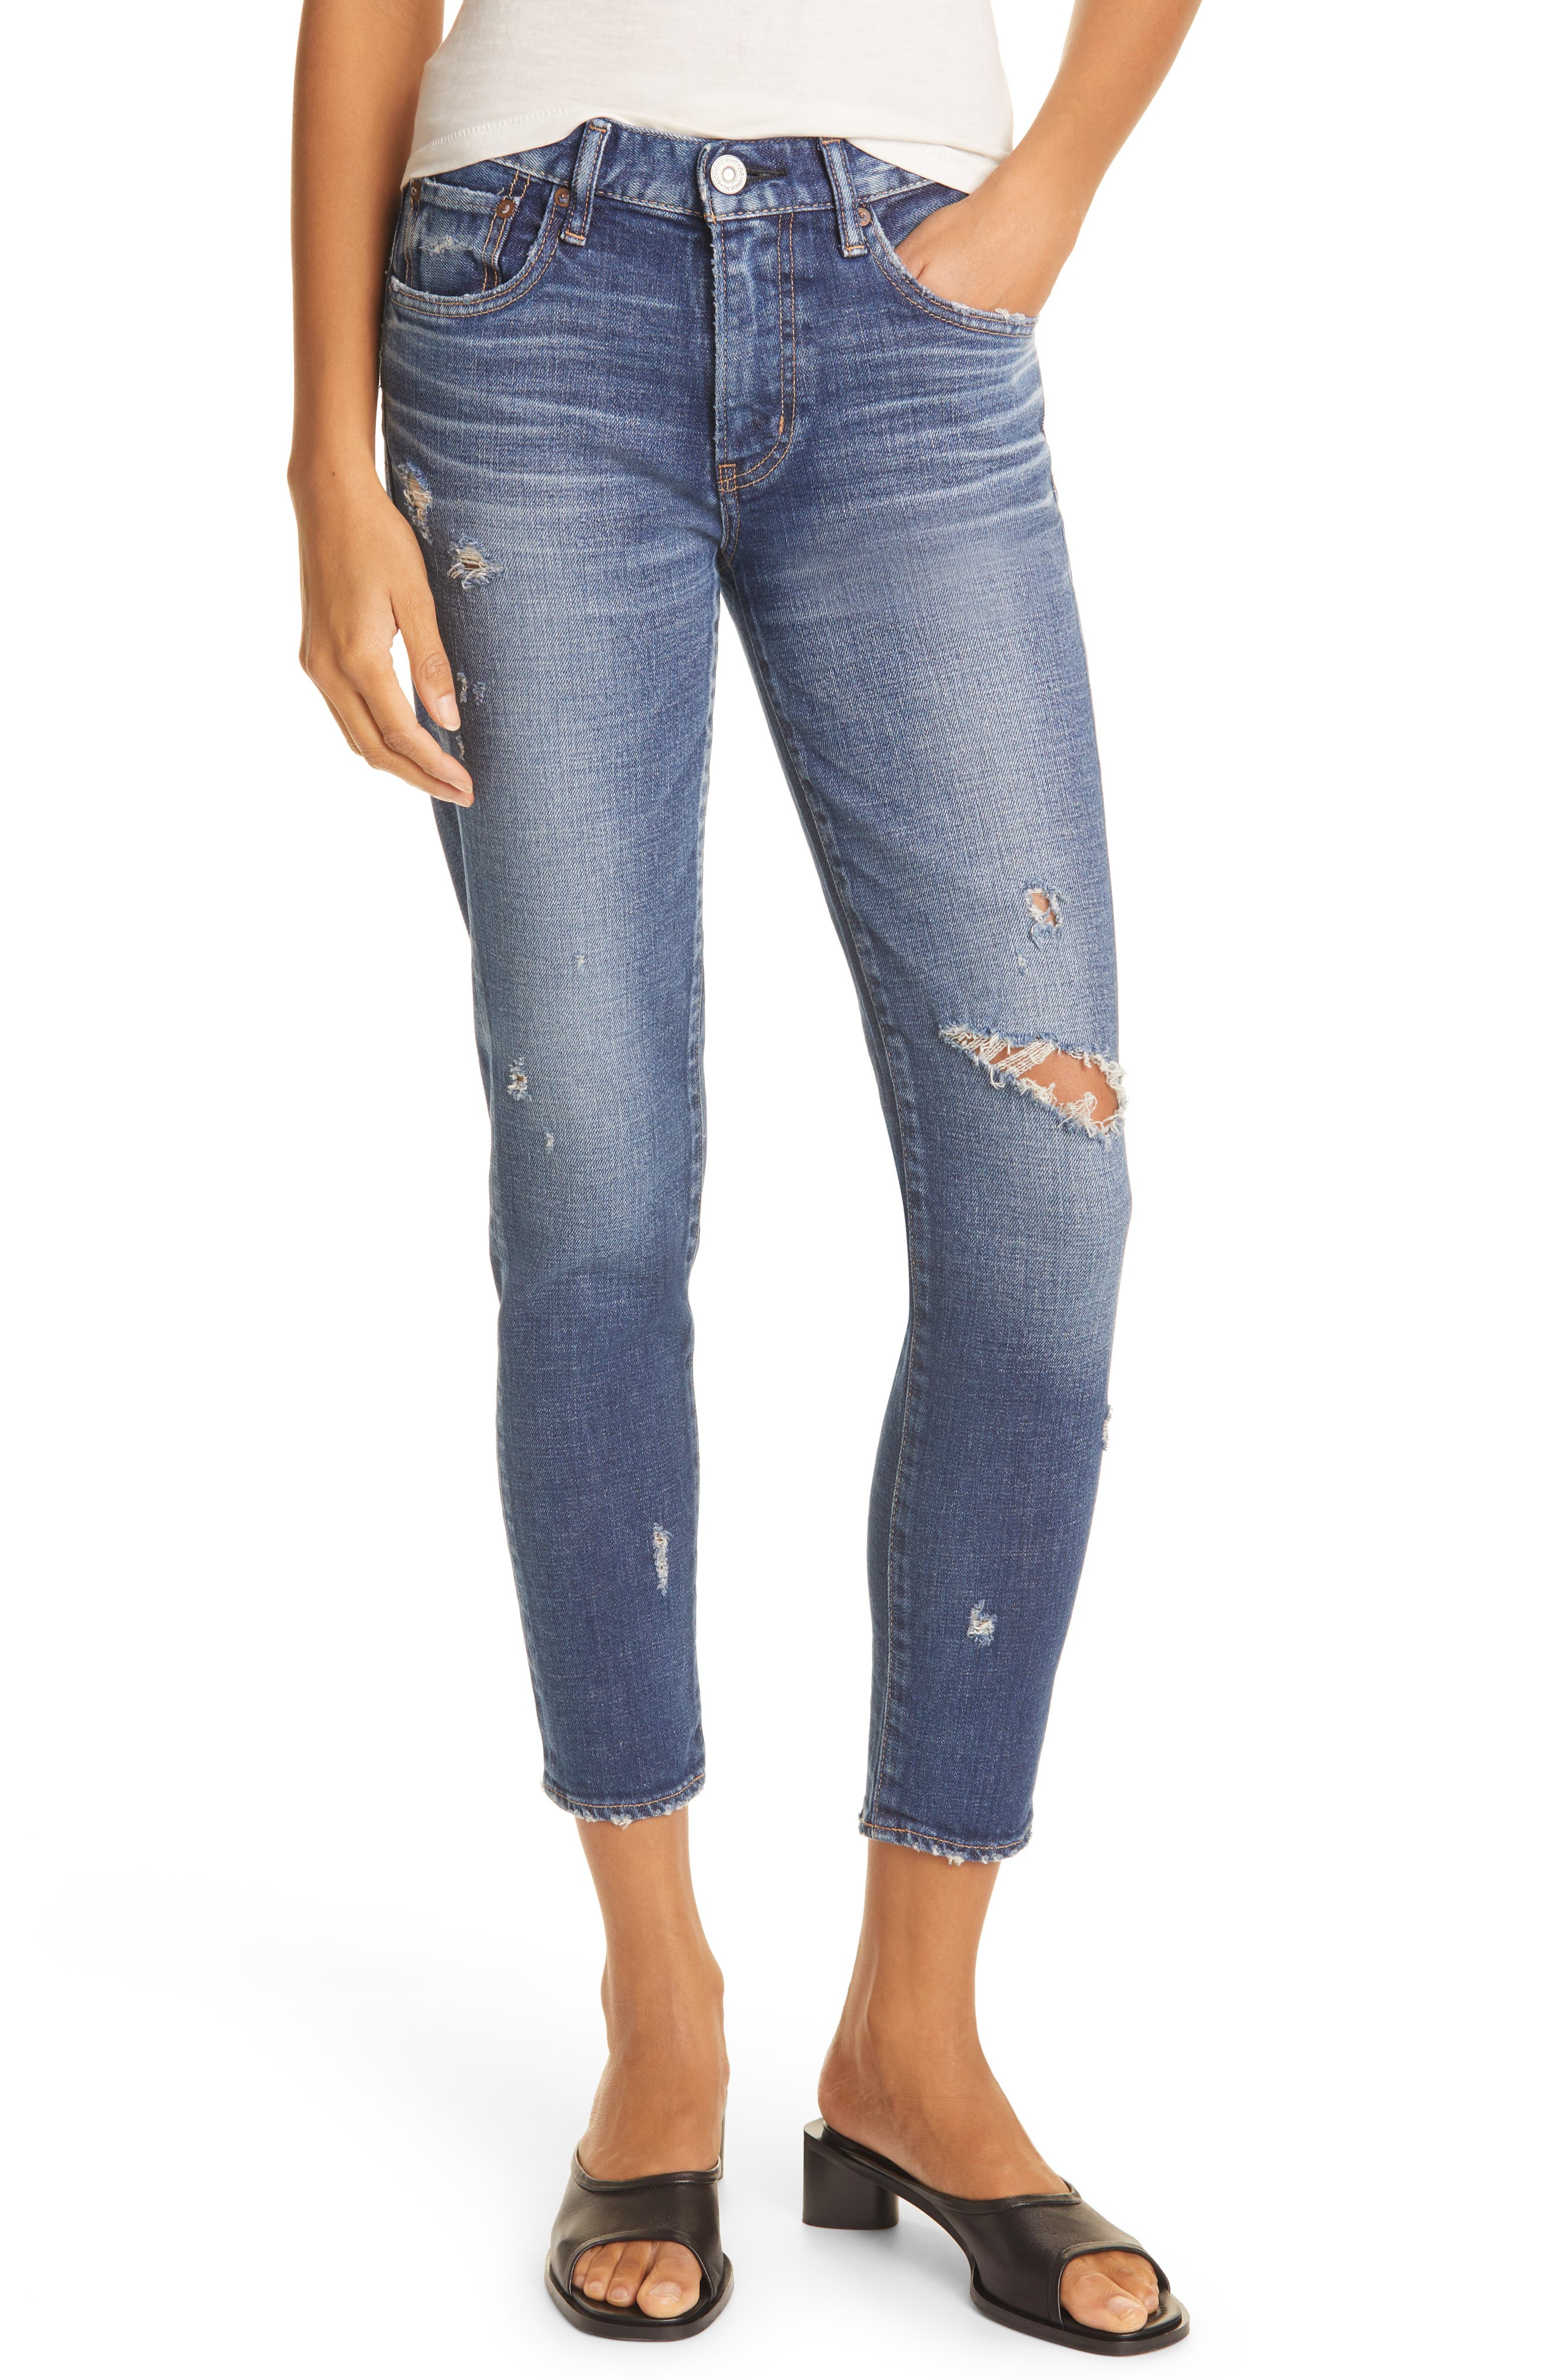 Ripped Gleedsville Ankle Skinny Jeans